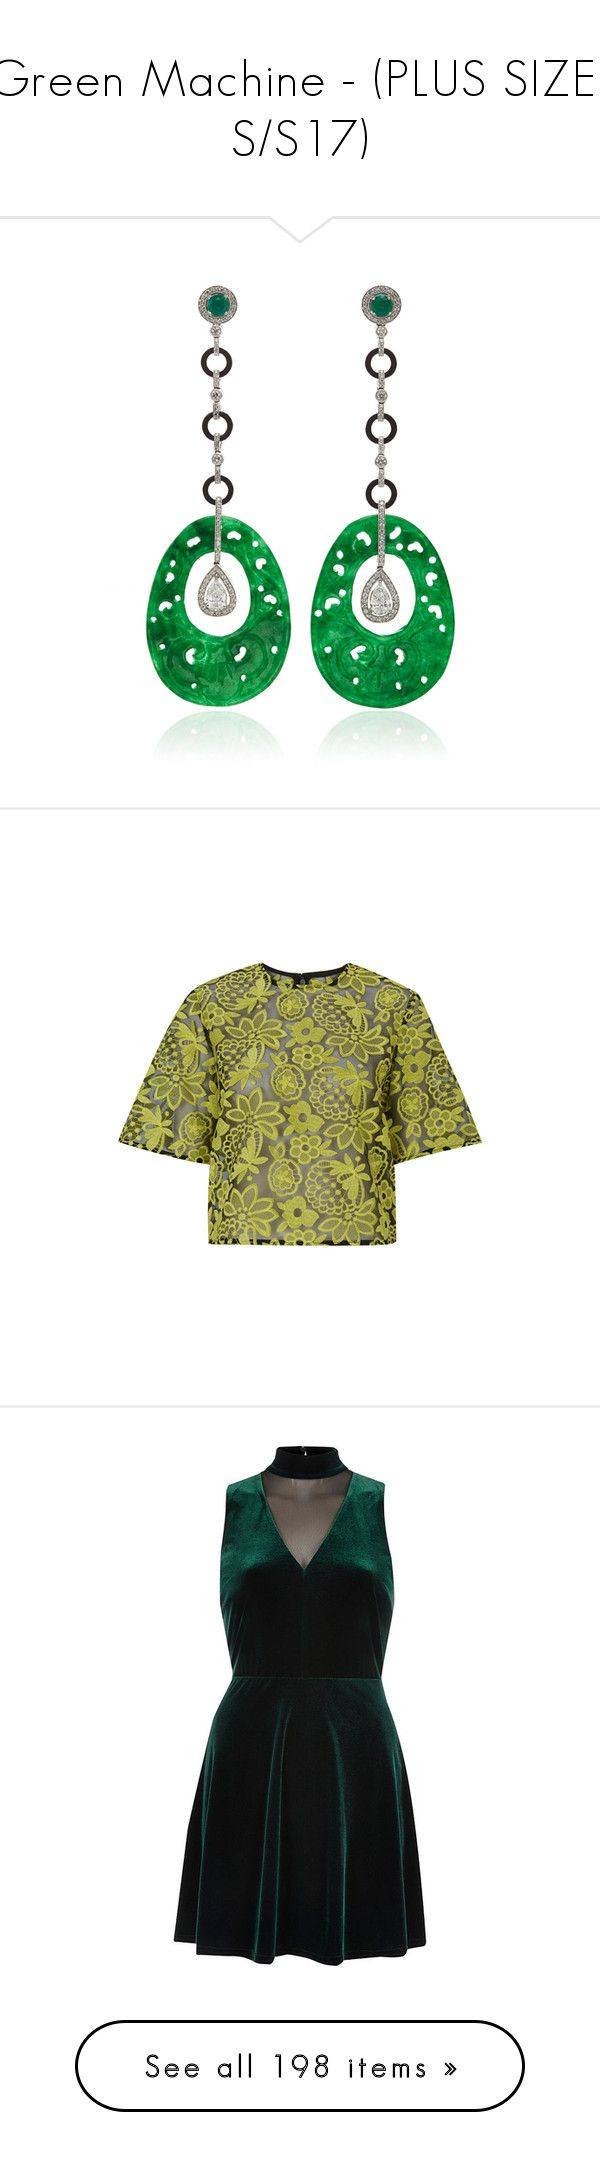 """""""Green Machine - (PLUS SIZE  S/S17)"""" by foolsuk ❤ liked on Polyvore featuring jewelry, earrings, diamond jewellery, diamond earring jewelry, diamond jewelry, circle diamond earrings, drop earrings, tops, yellow and sheer lace top"""